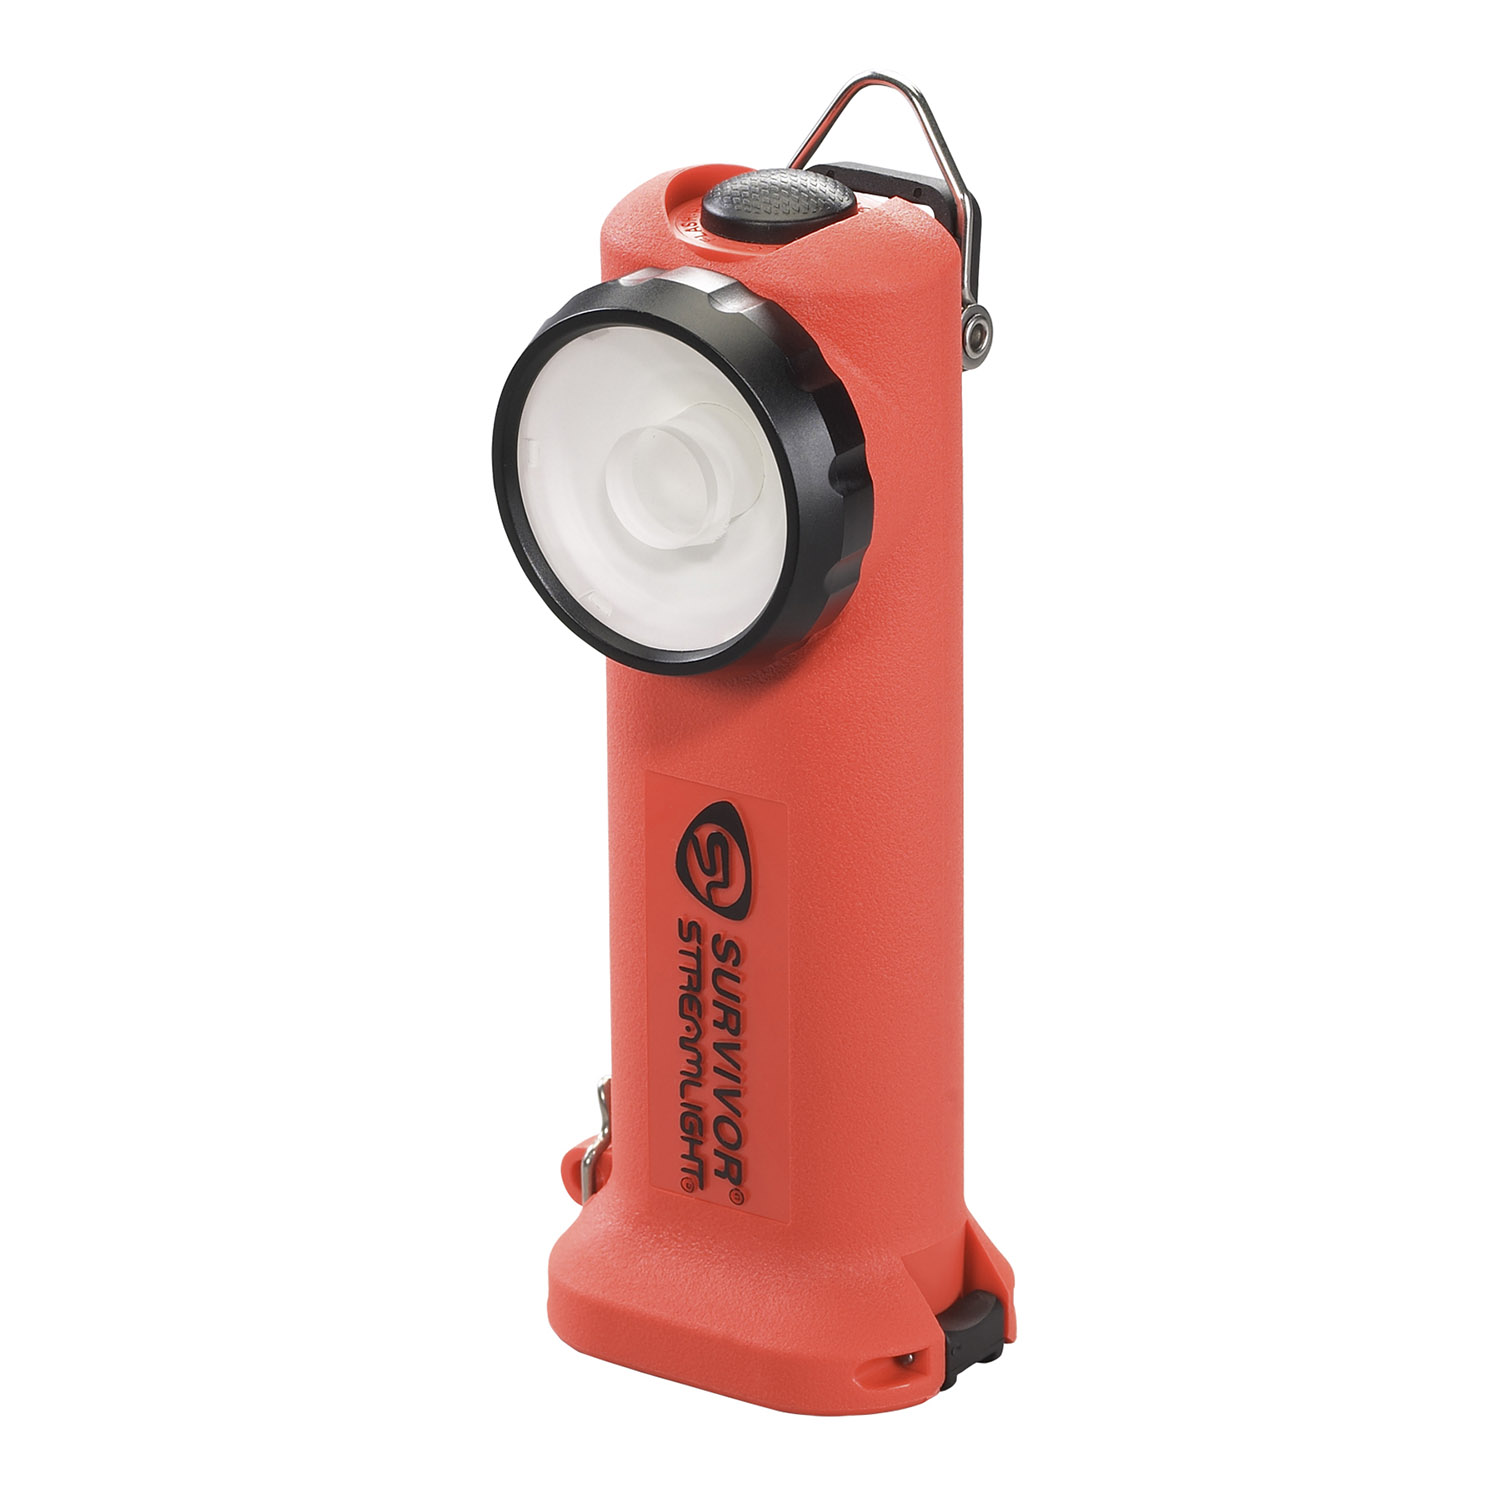 Streamlight Survivor LED Flashlight with Alkaline Battery Pa